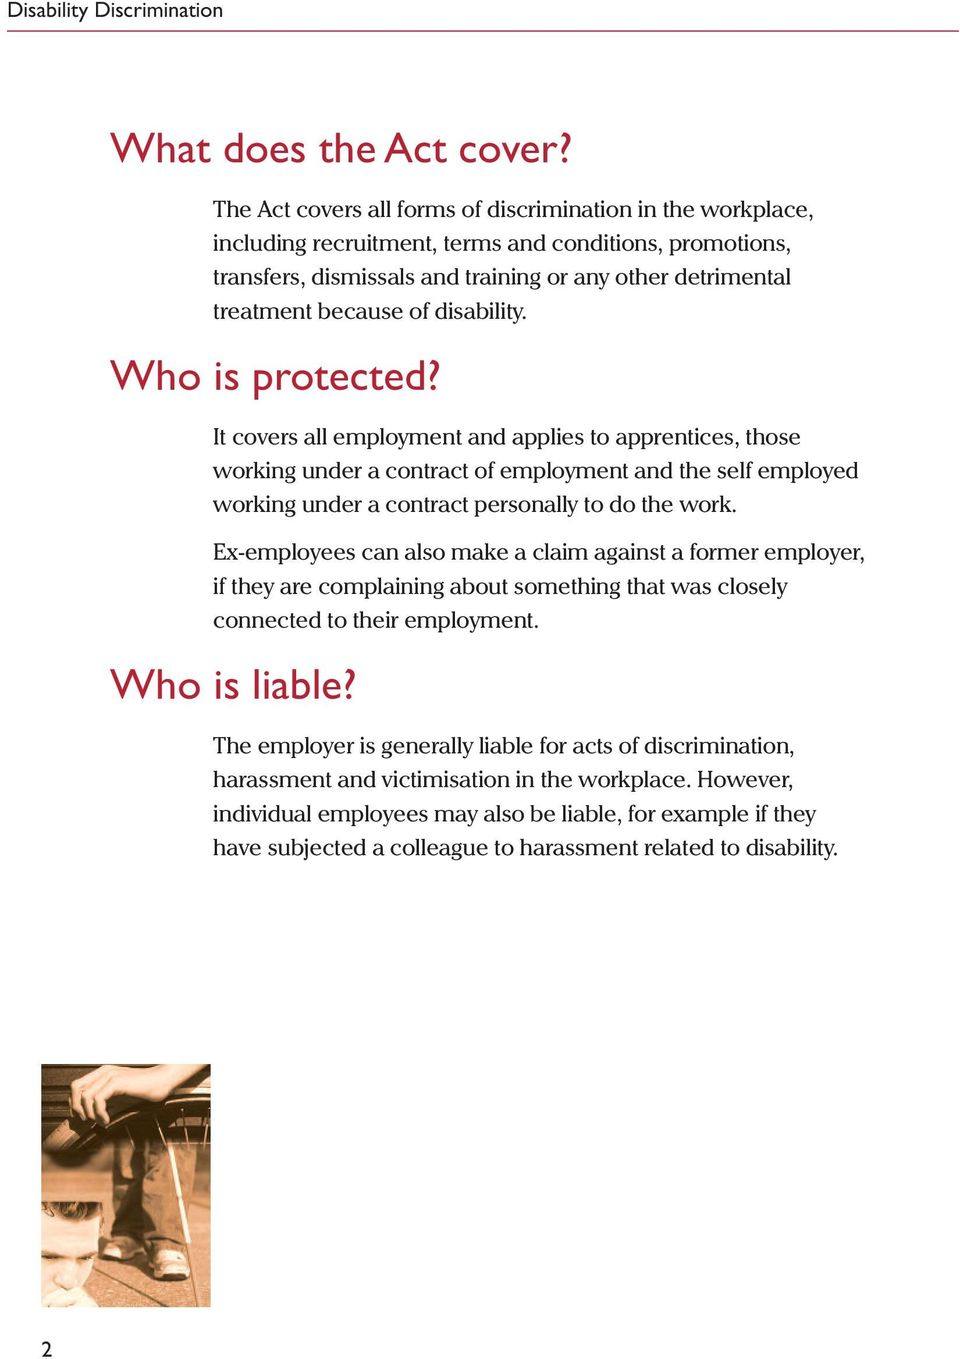 disability. Who is protected?